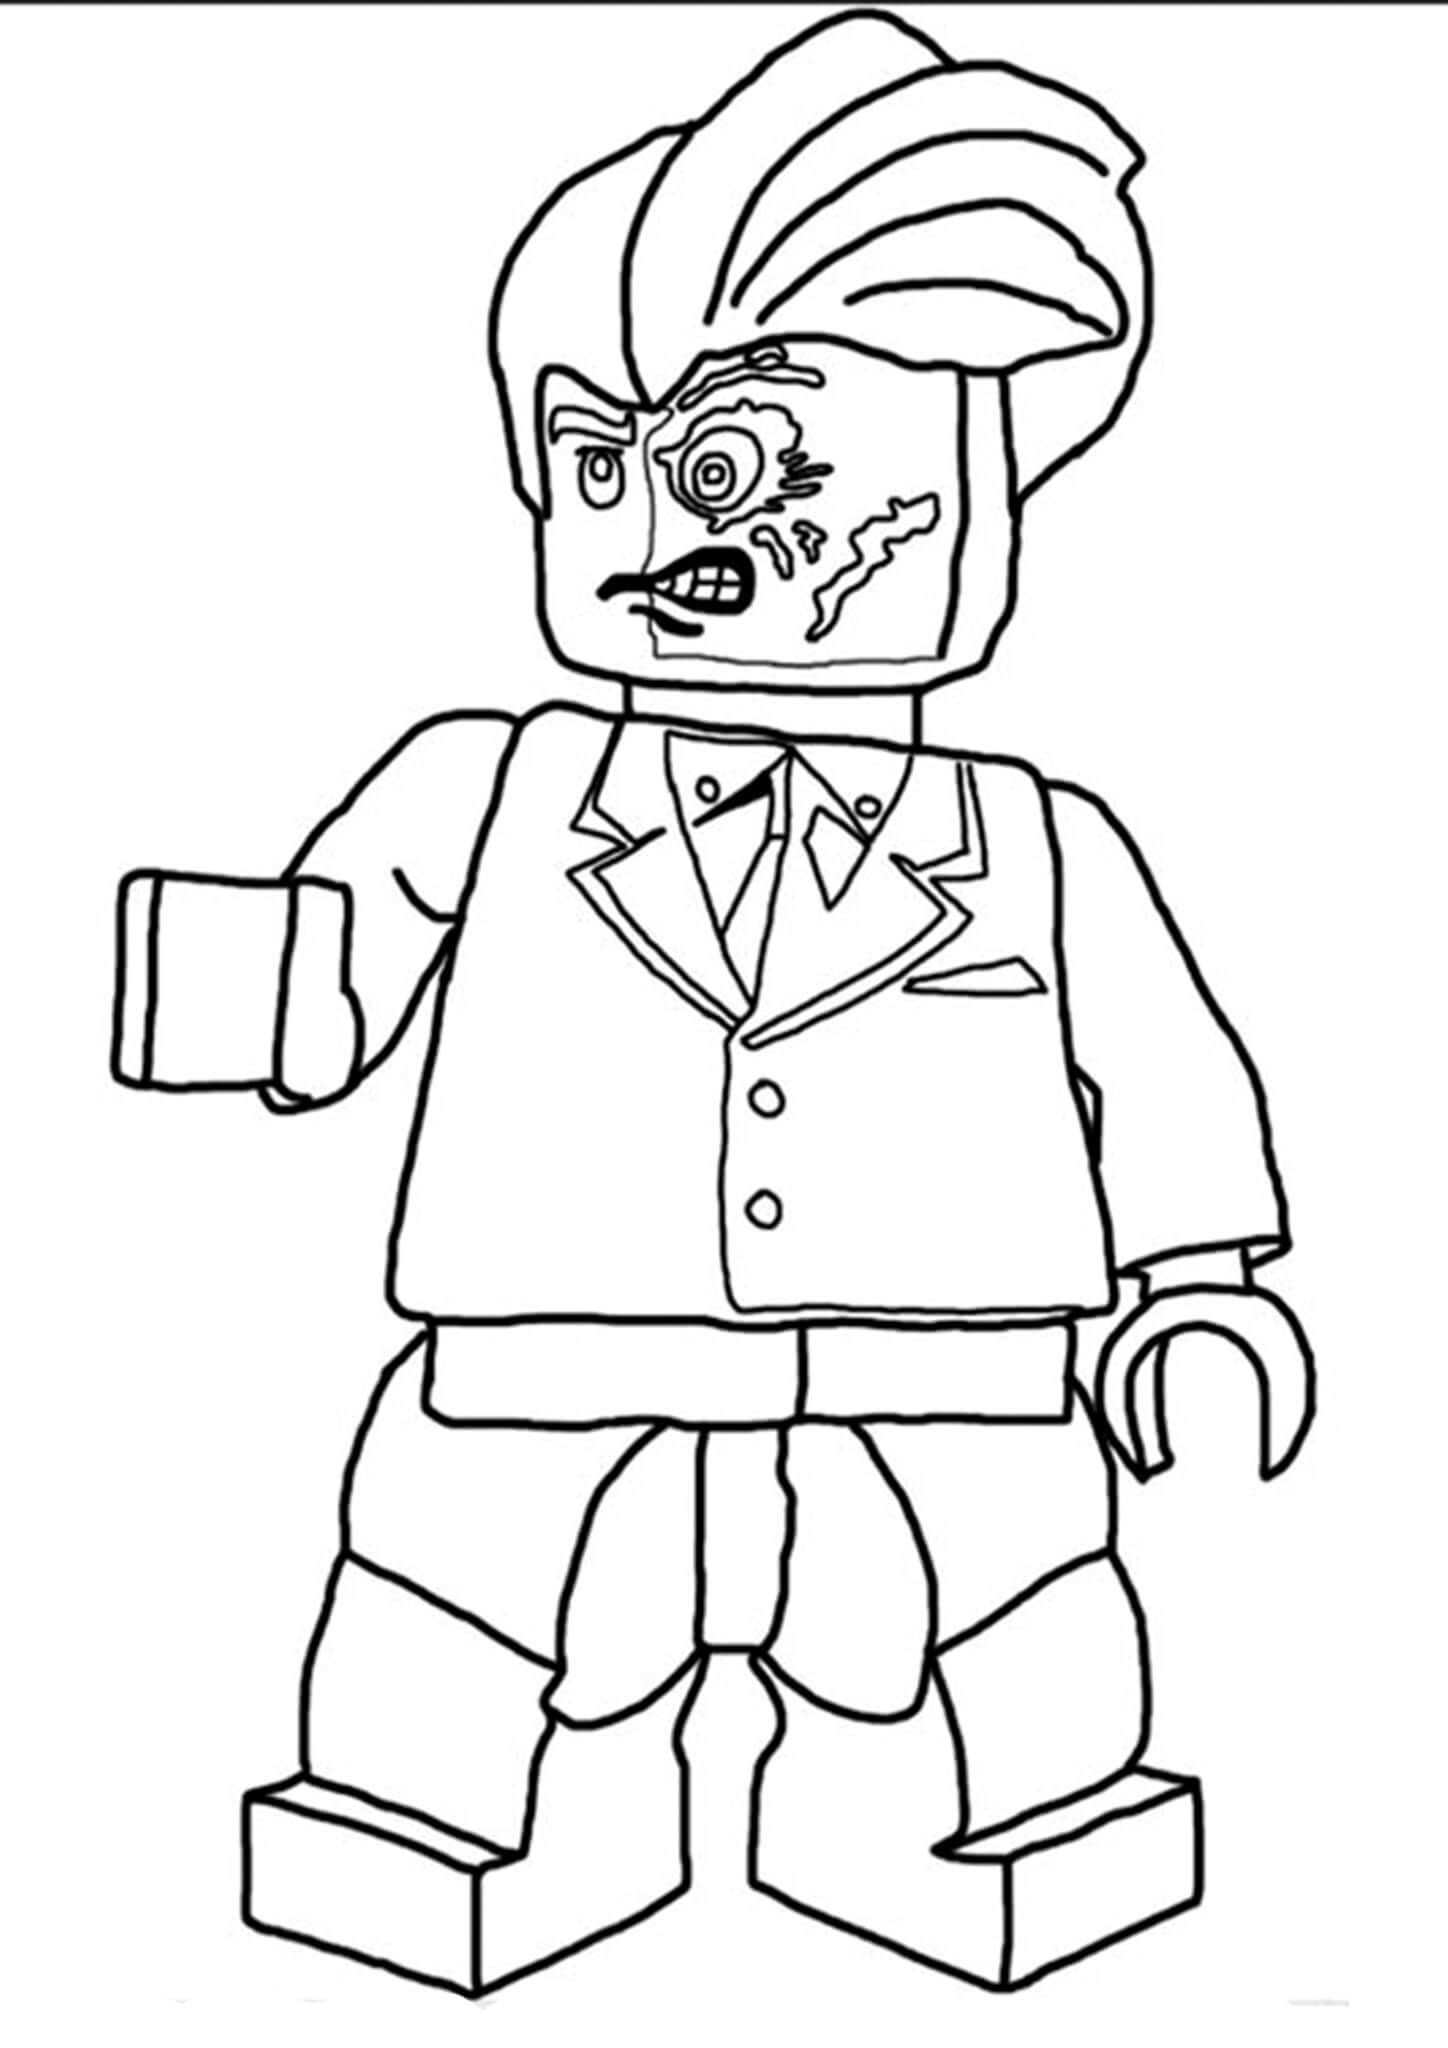 Free Easy To Print Lego Batman Coloring Pages Lego Coloring Superhero Coloring Pages Lego Coloring Pages [ 2048 x 1448 Pixel ]